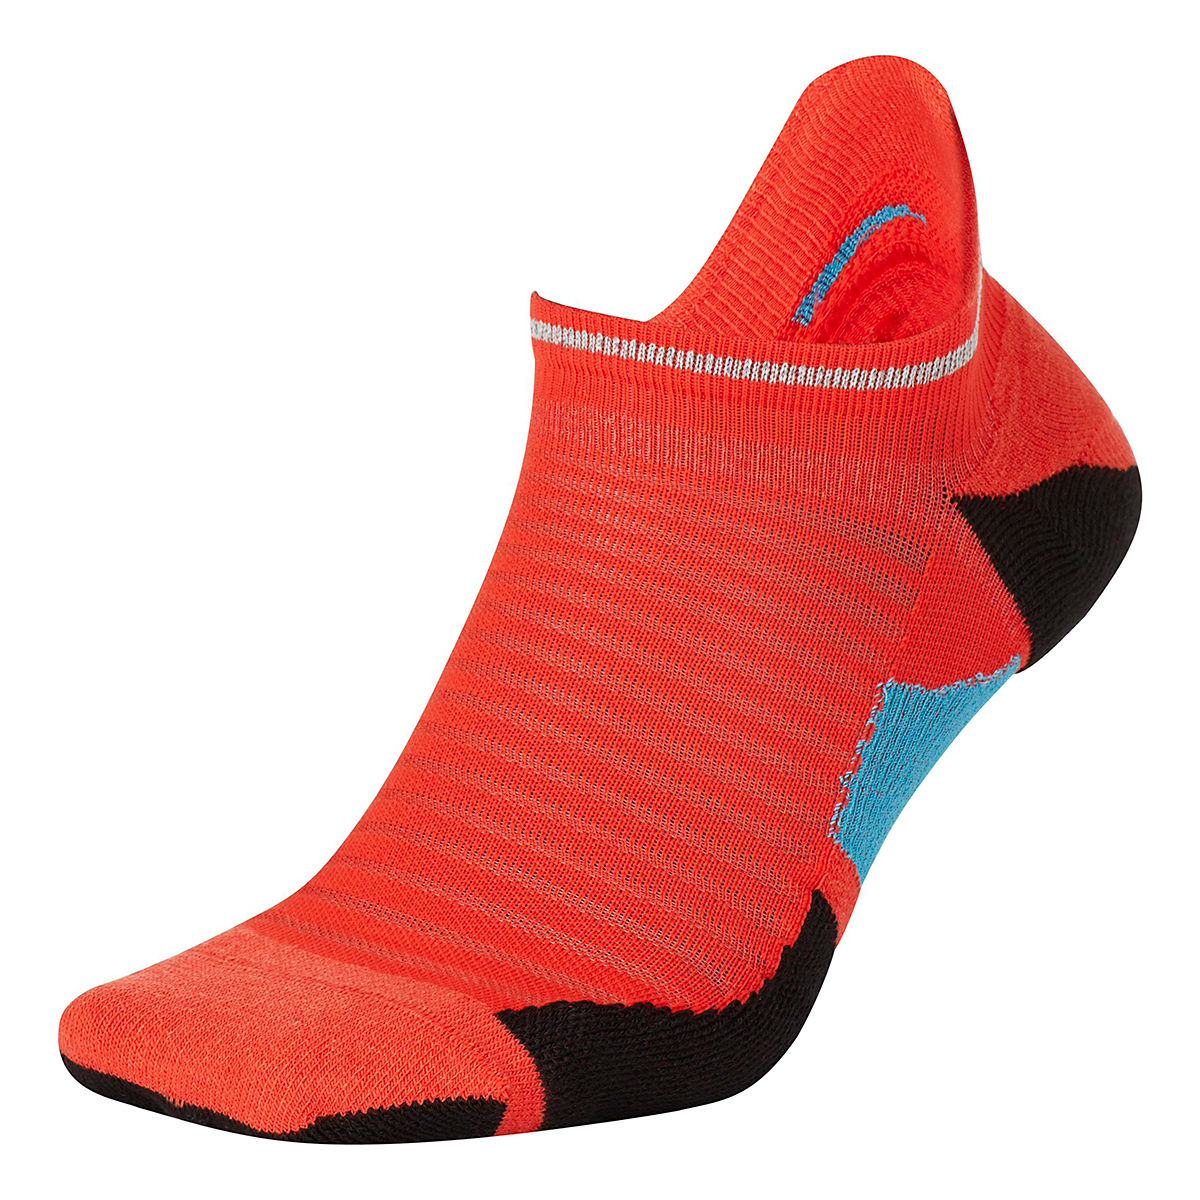 Nike Spark Cushion No Show Sock - Color: Chile Red/Reflective - Size: 4/5.5, Chile Red/Reflective, large, image 1